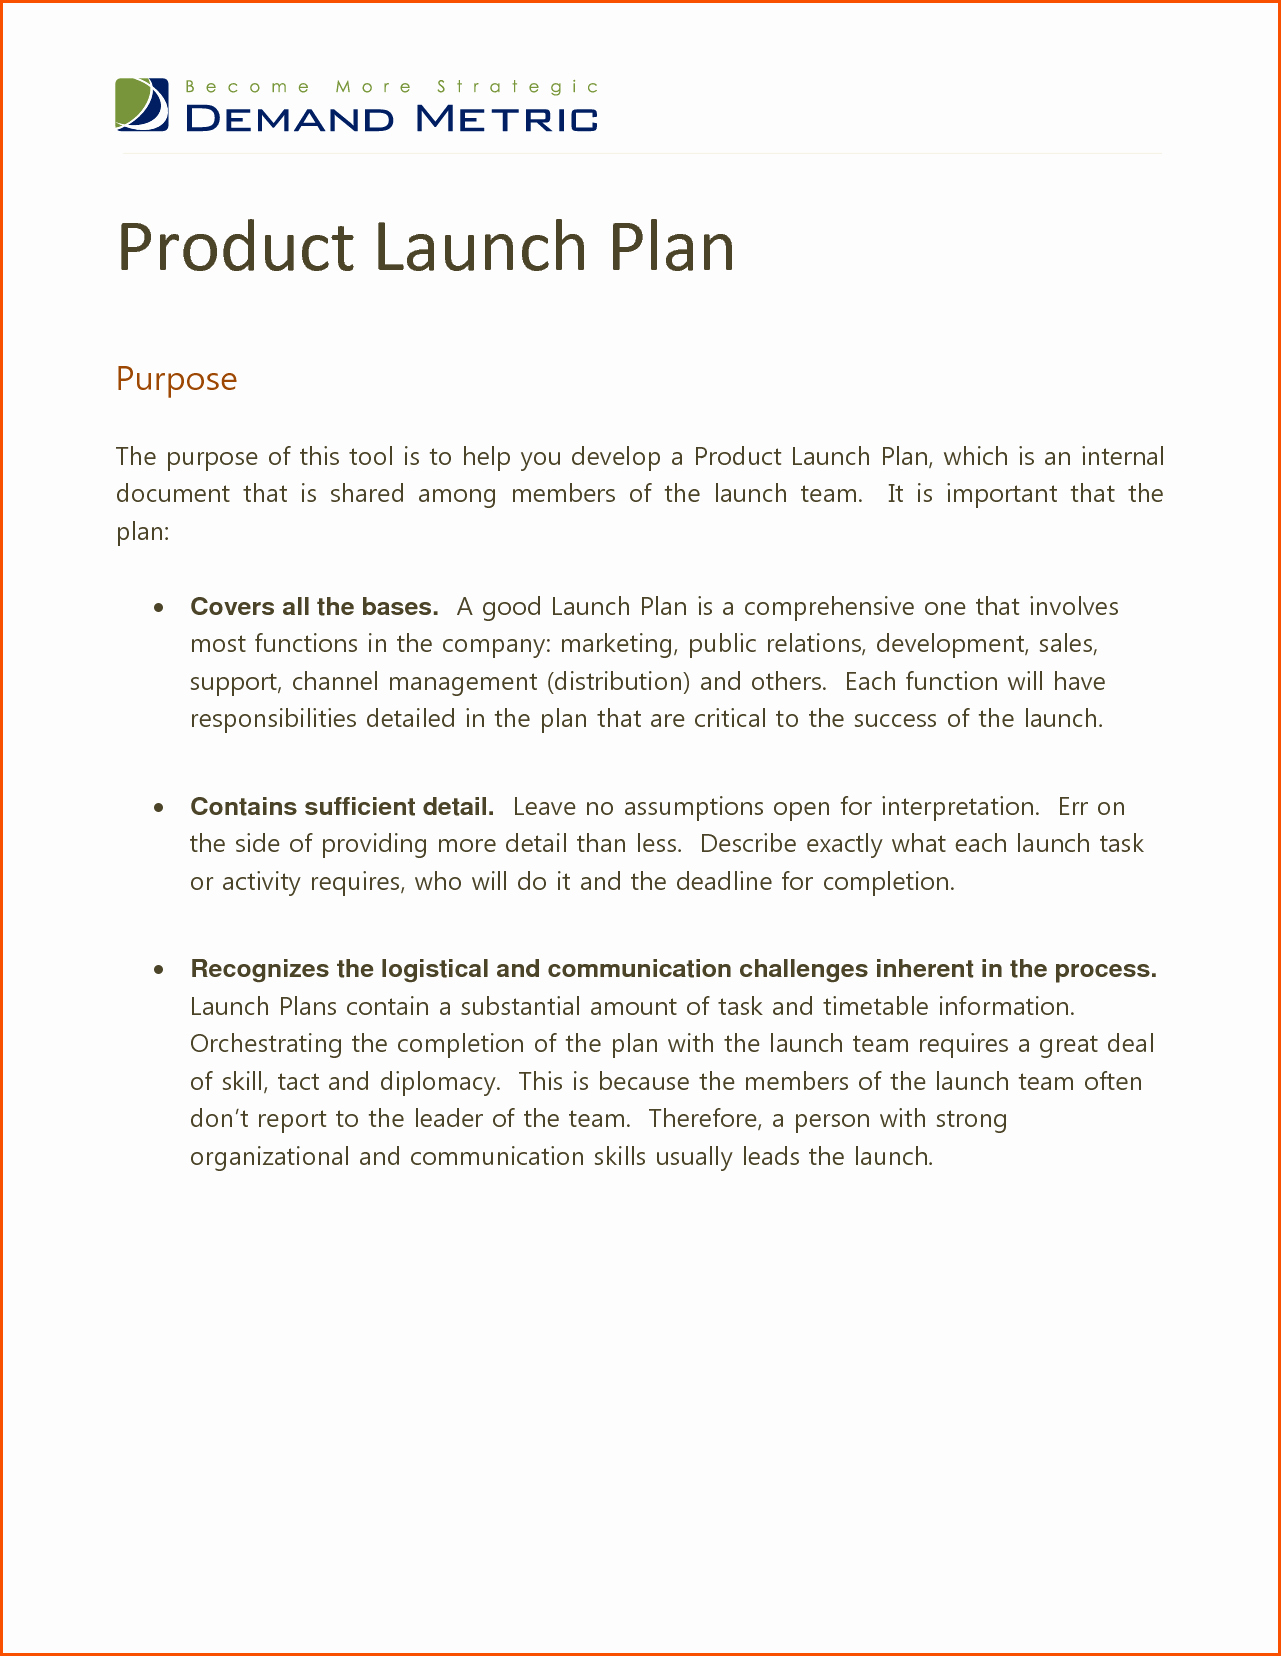 Product Launch Plan Template Inspirational Product Launch Plan Templatememo Templates Word